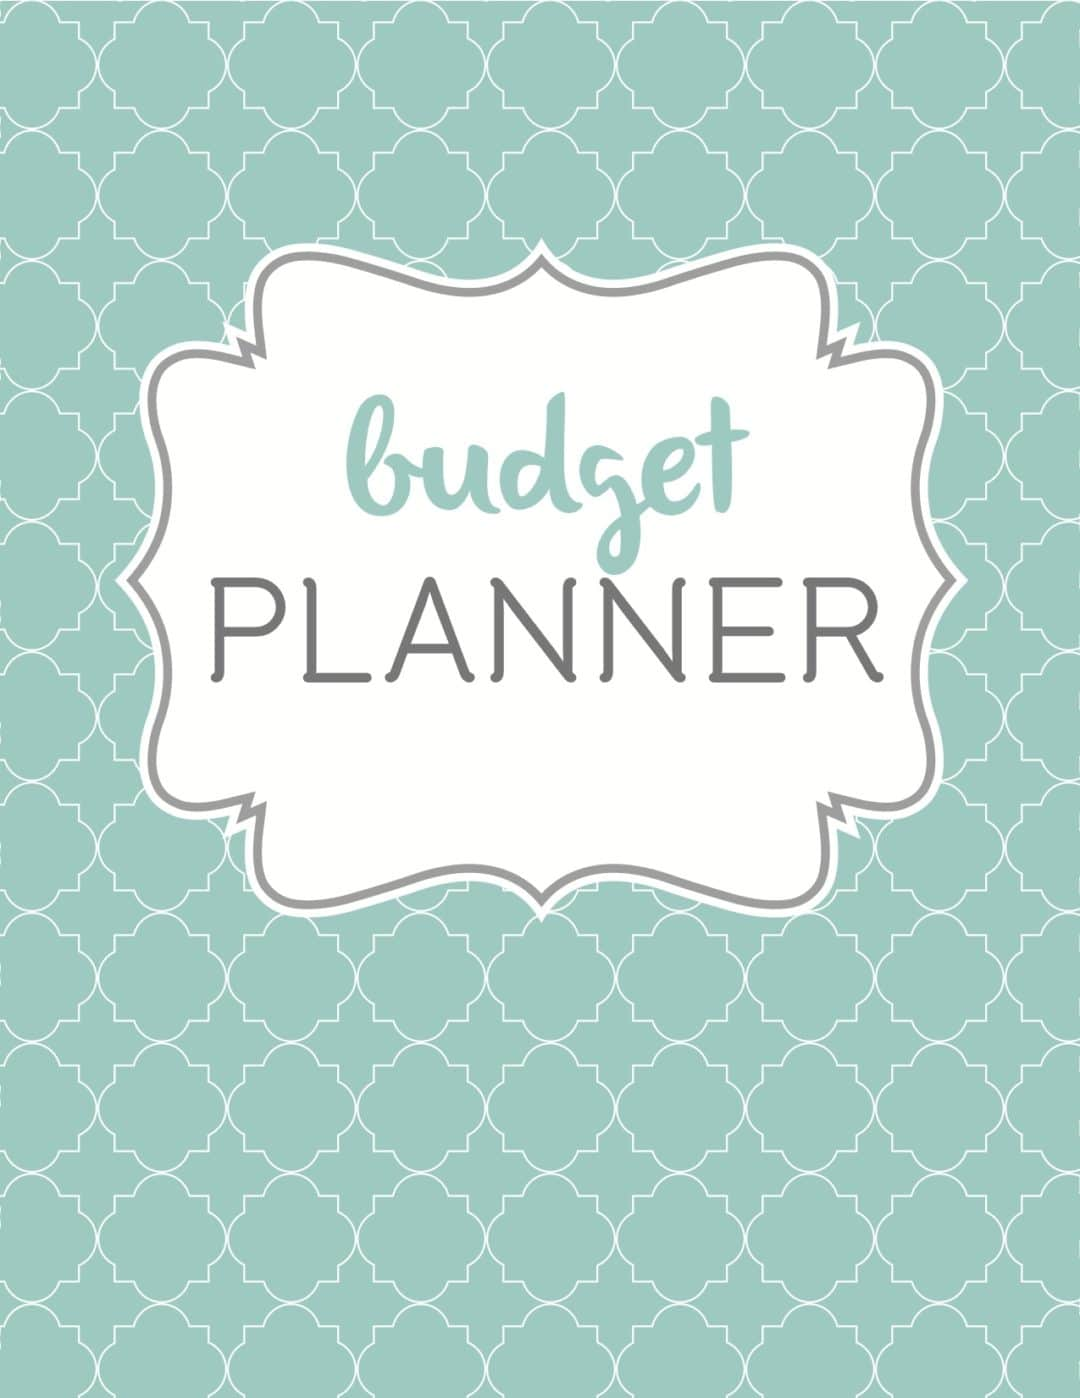 Budget Planner Cover Money Savvy Mums